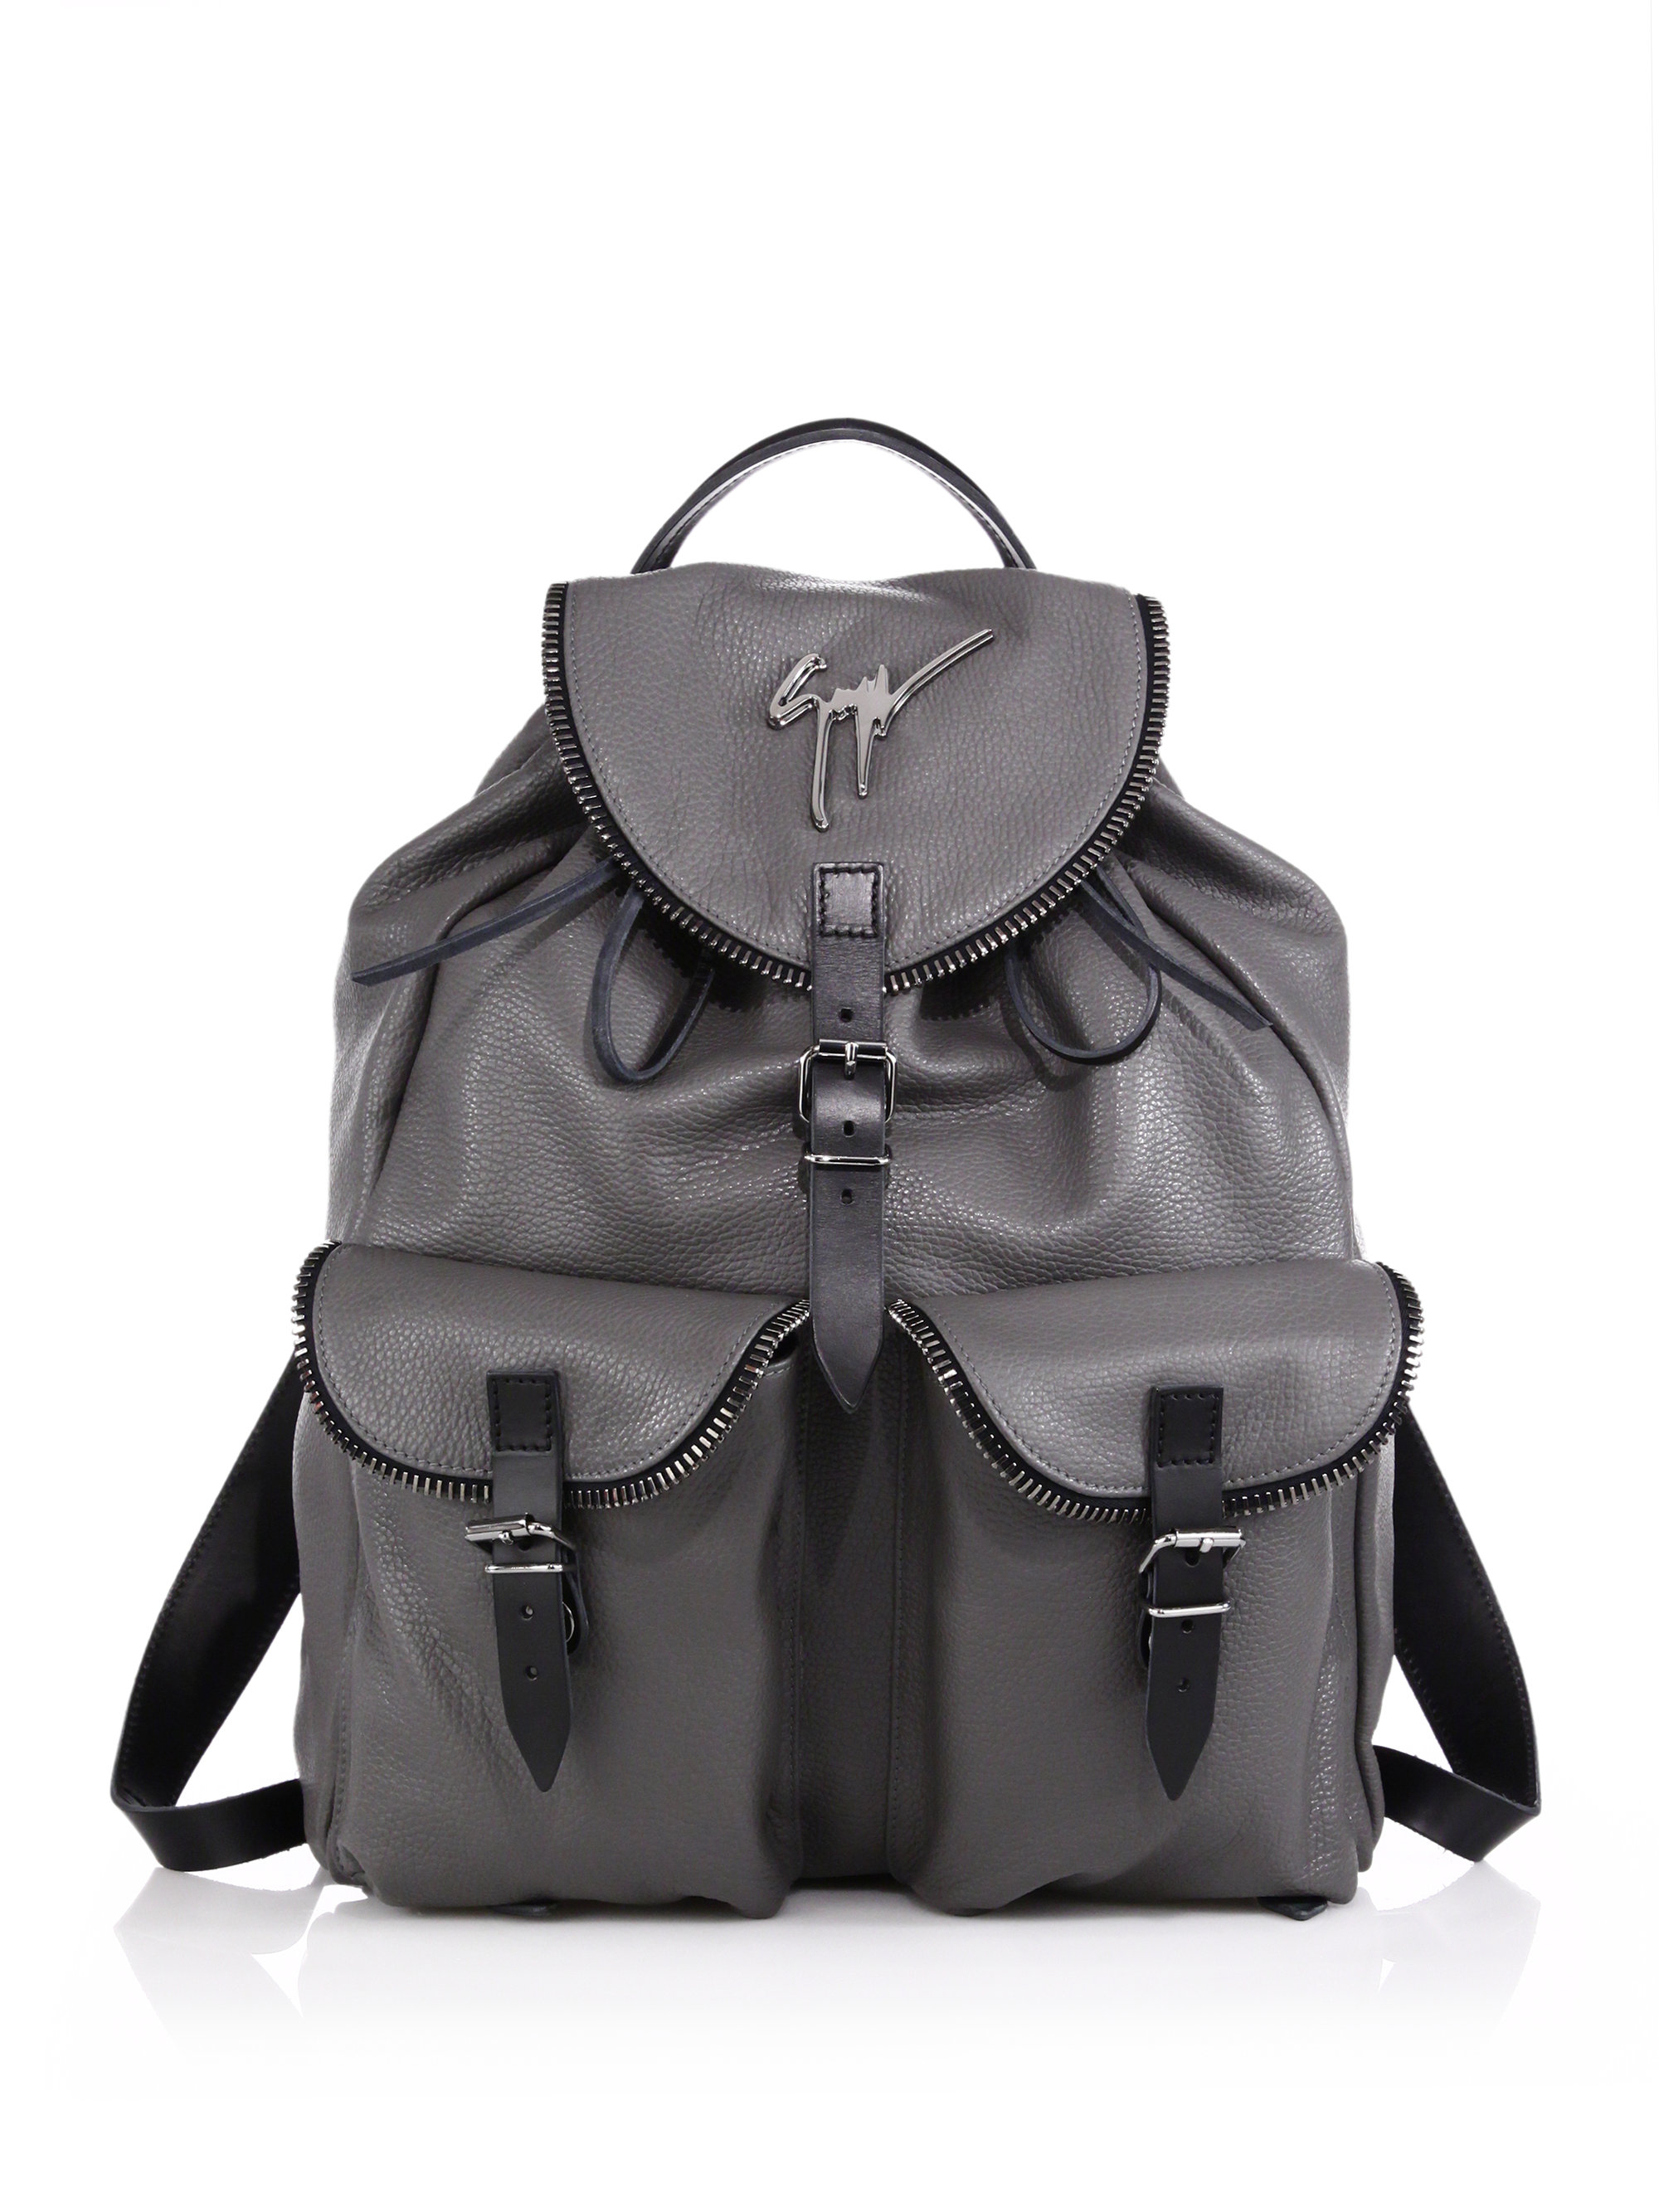 fd634bc0e16f9 Giuseppe Zanotti Zipper-trim Leather Backpack in Gray for Men - Lyst